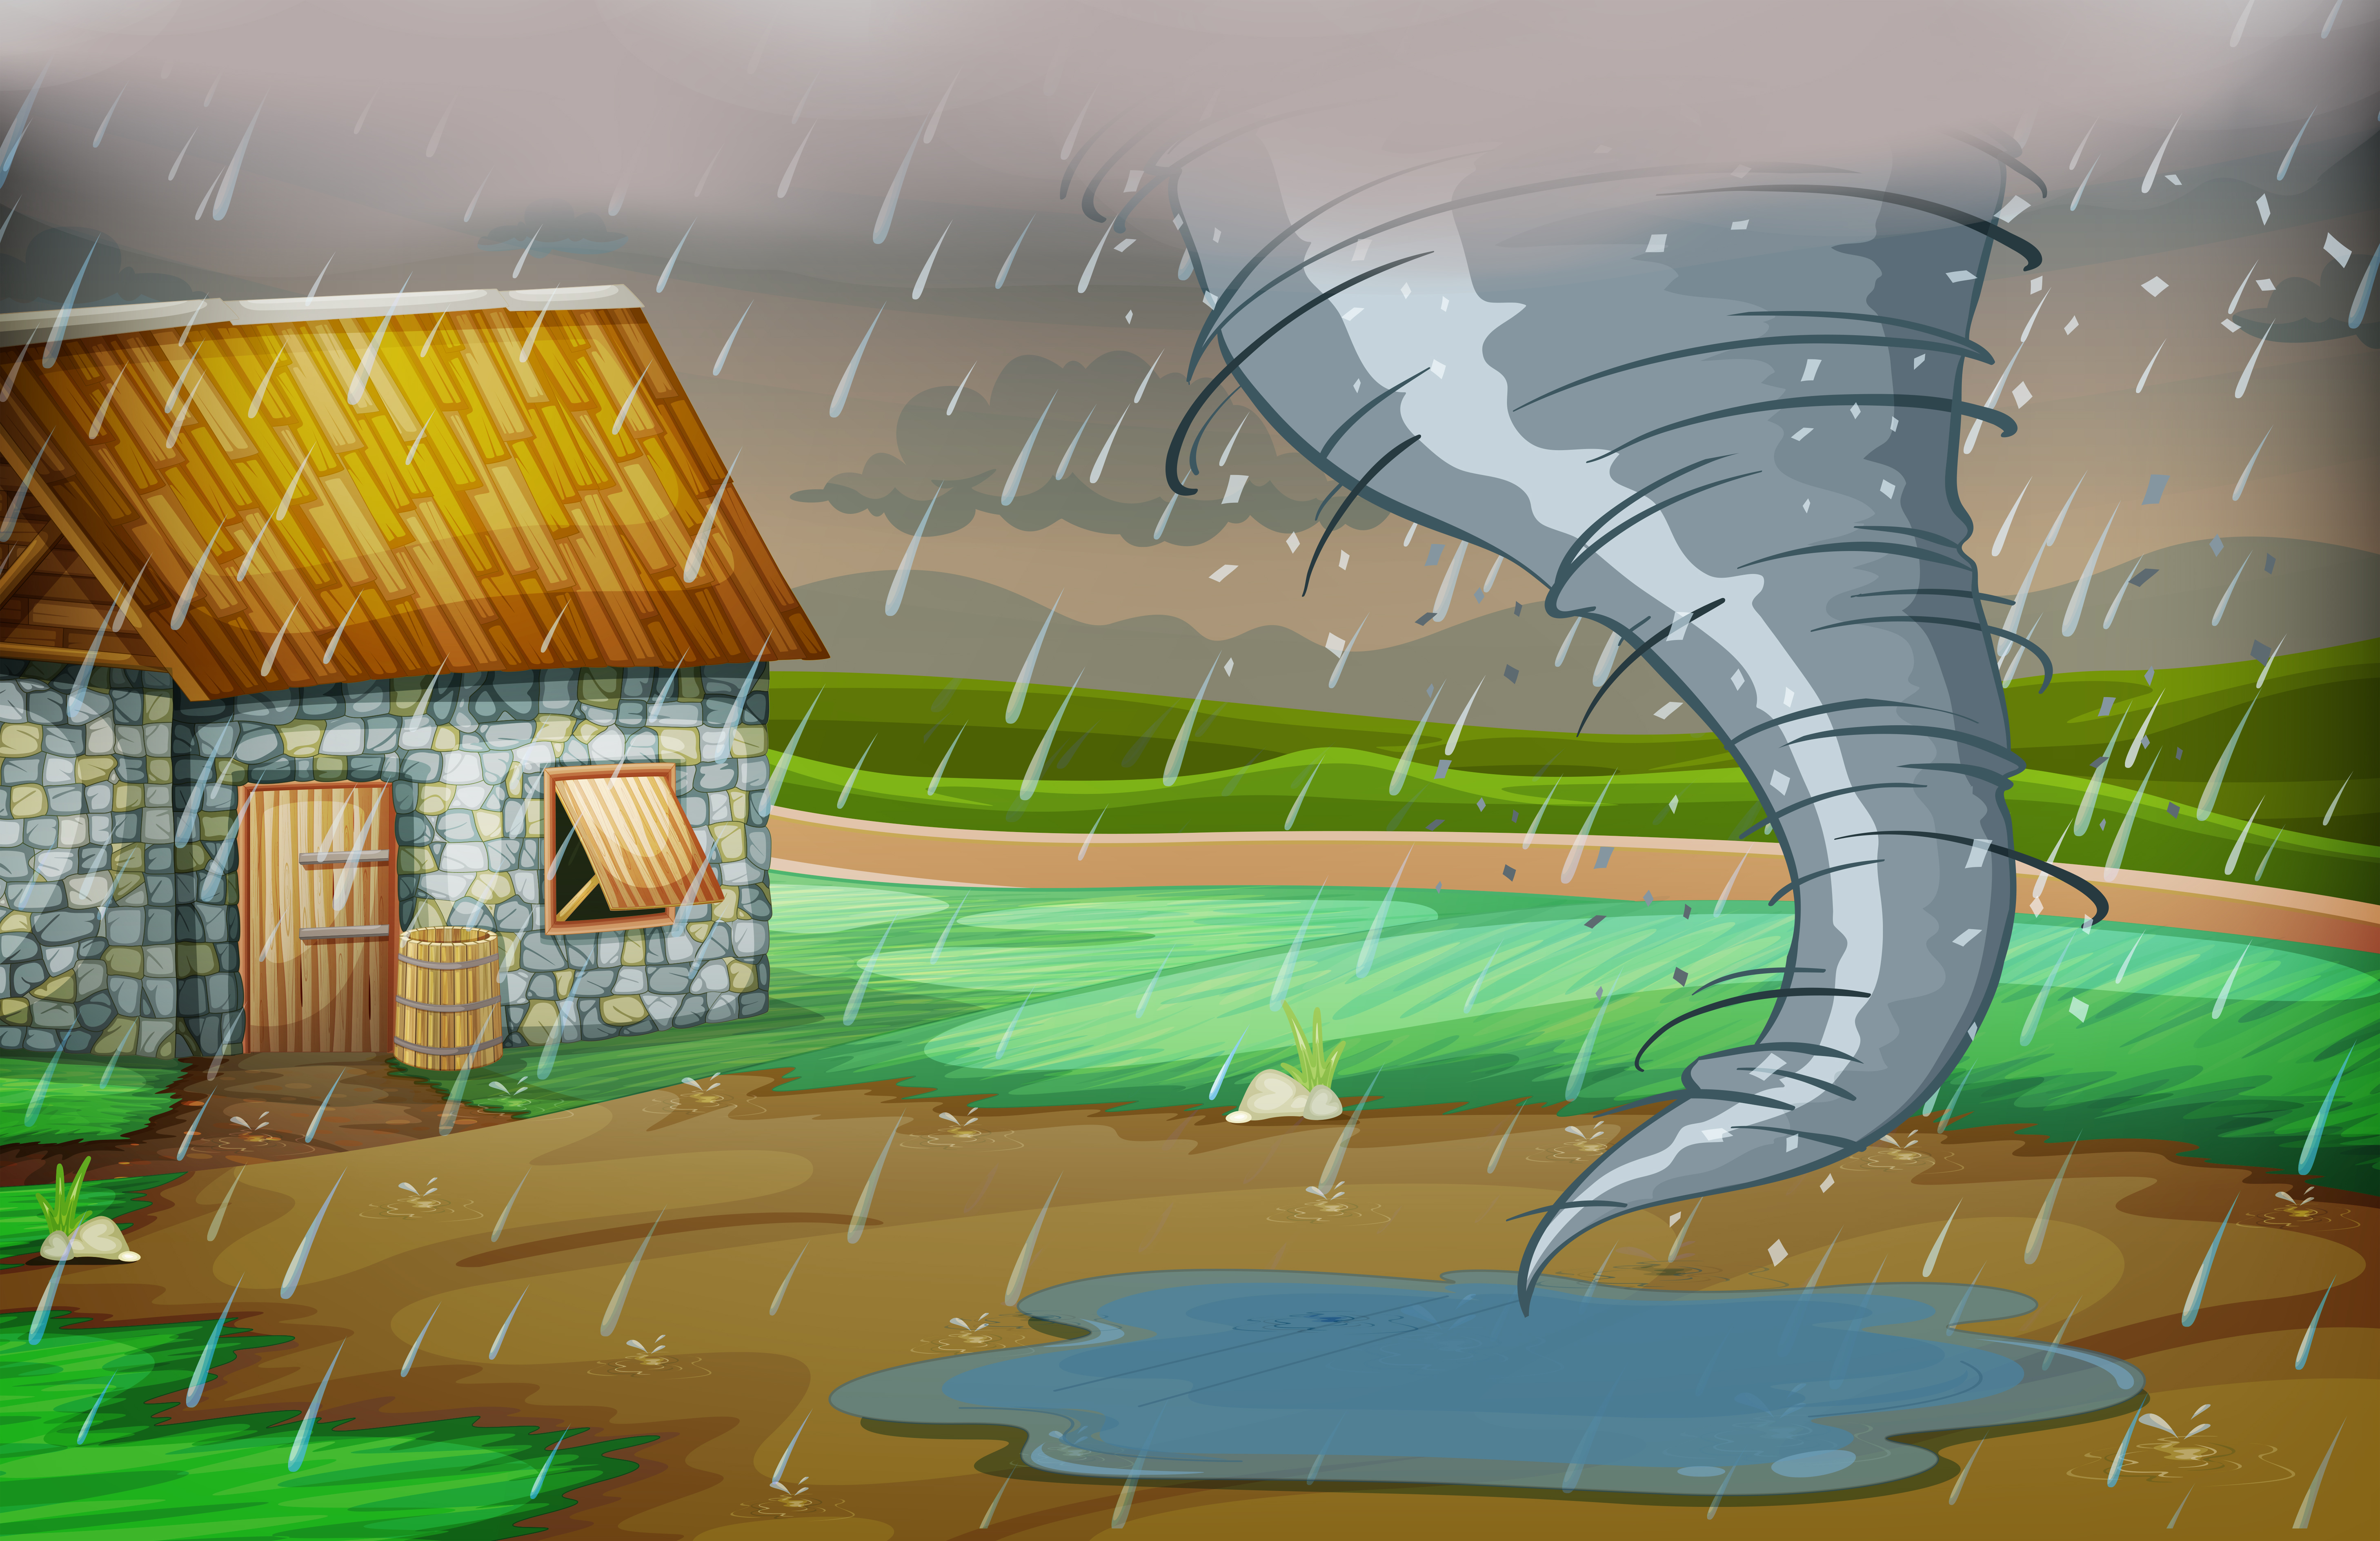 A storm hit the house download free vectors clipart for Home design 3d professional italiano gratis